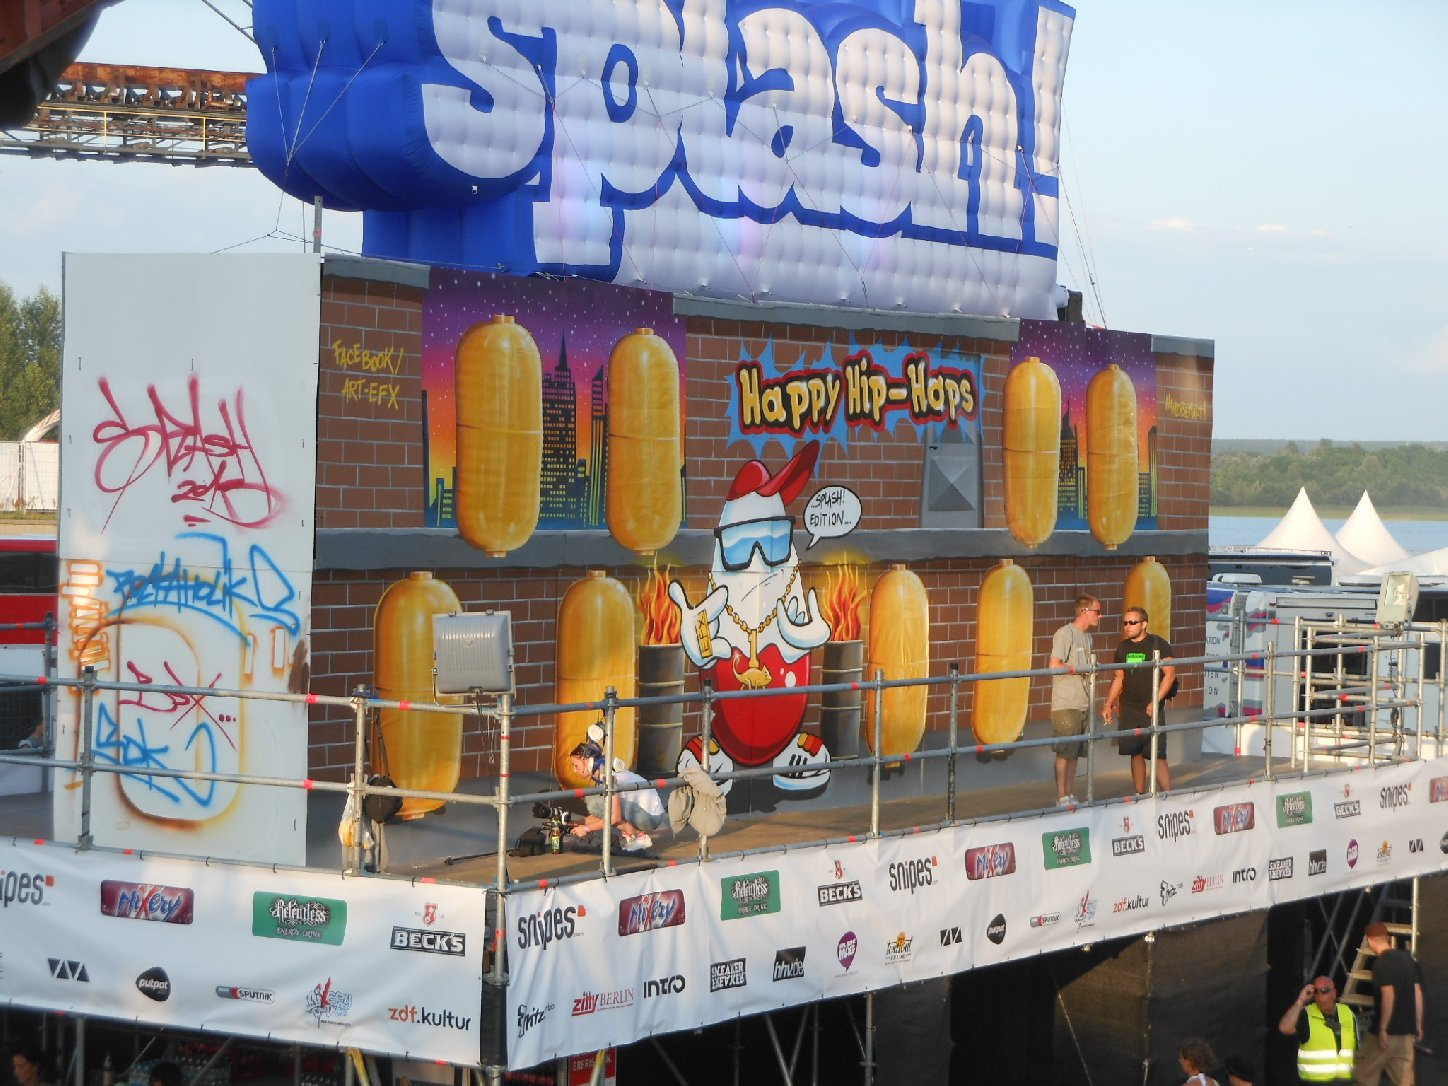 Graffiti - Splash 2013